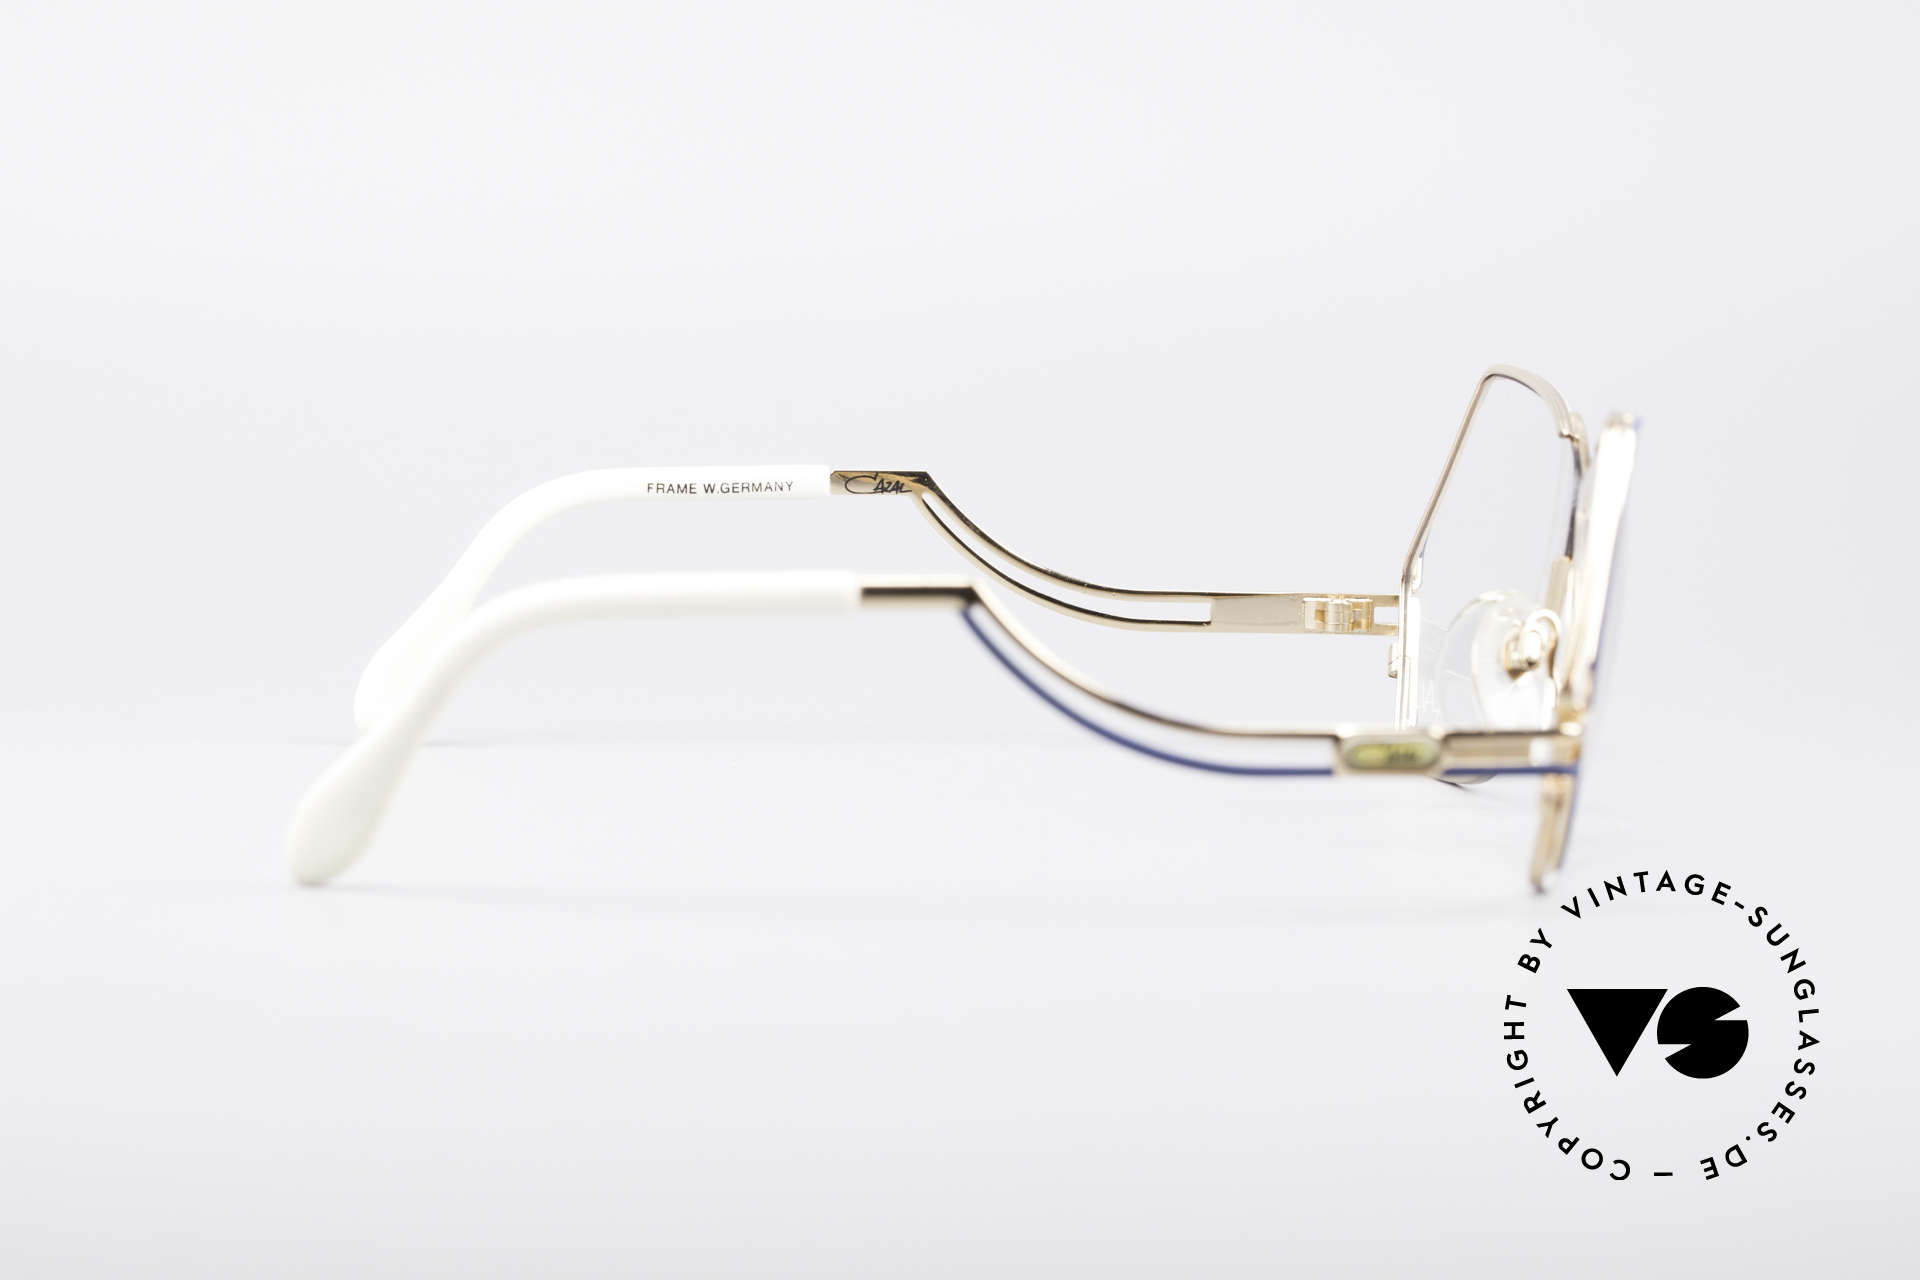 Cazal 226 West Germany Vintage Glasses, demo lenses can be replaced with optical (sun) lenses, Made for Women